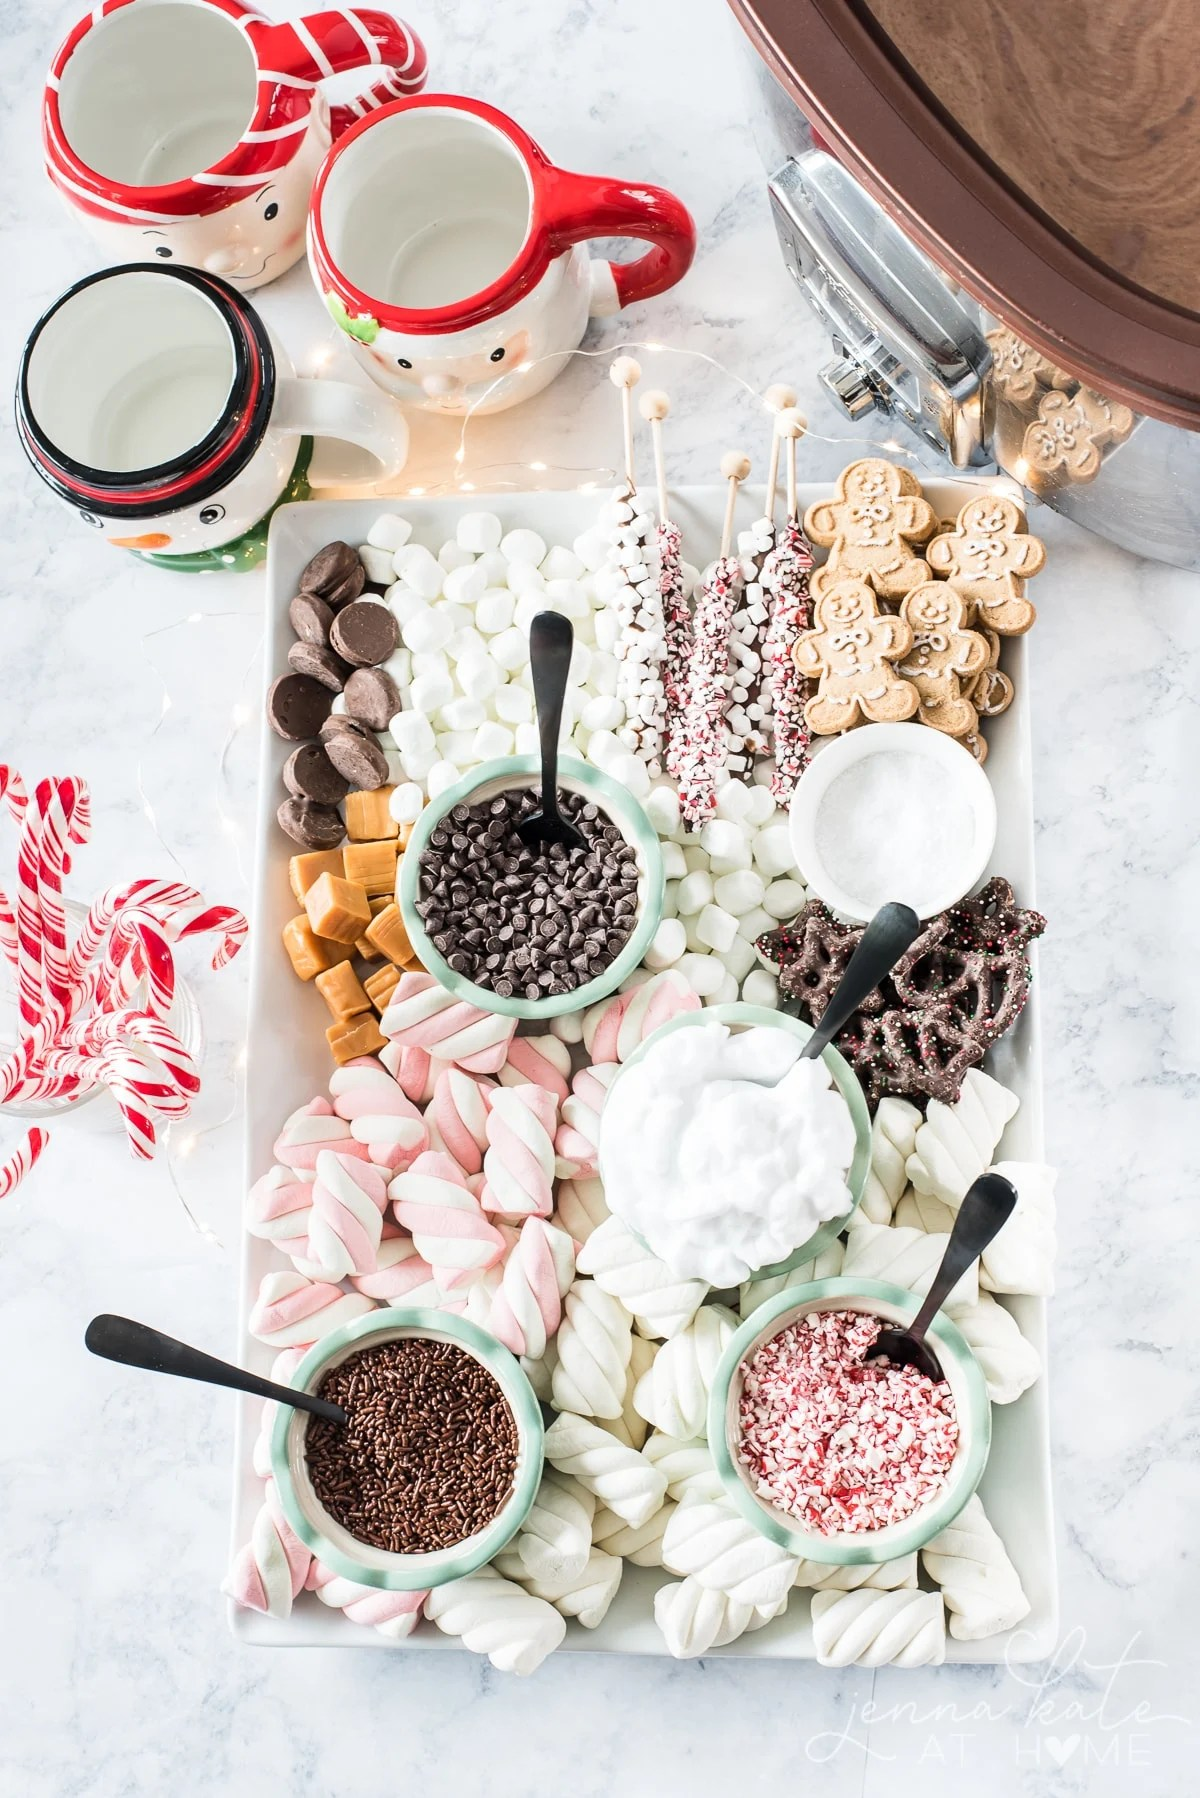 this easy Dessert Charcuterie Board is a fun display of sweet treats that's perfect for a build your own hot chocolate bar